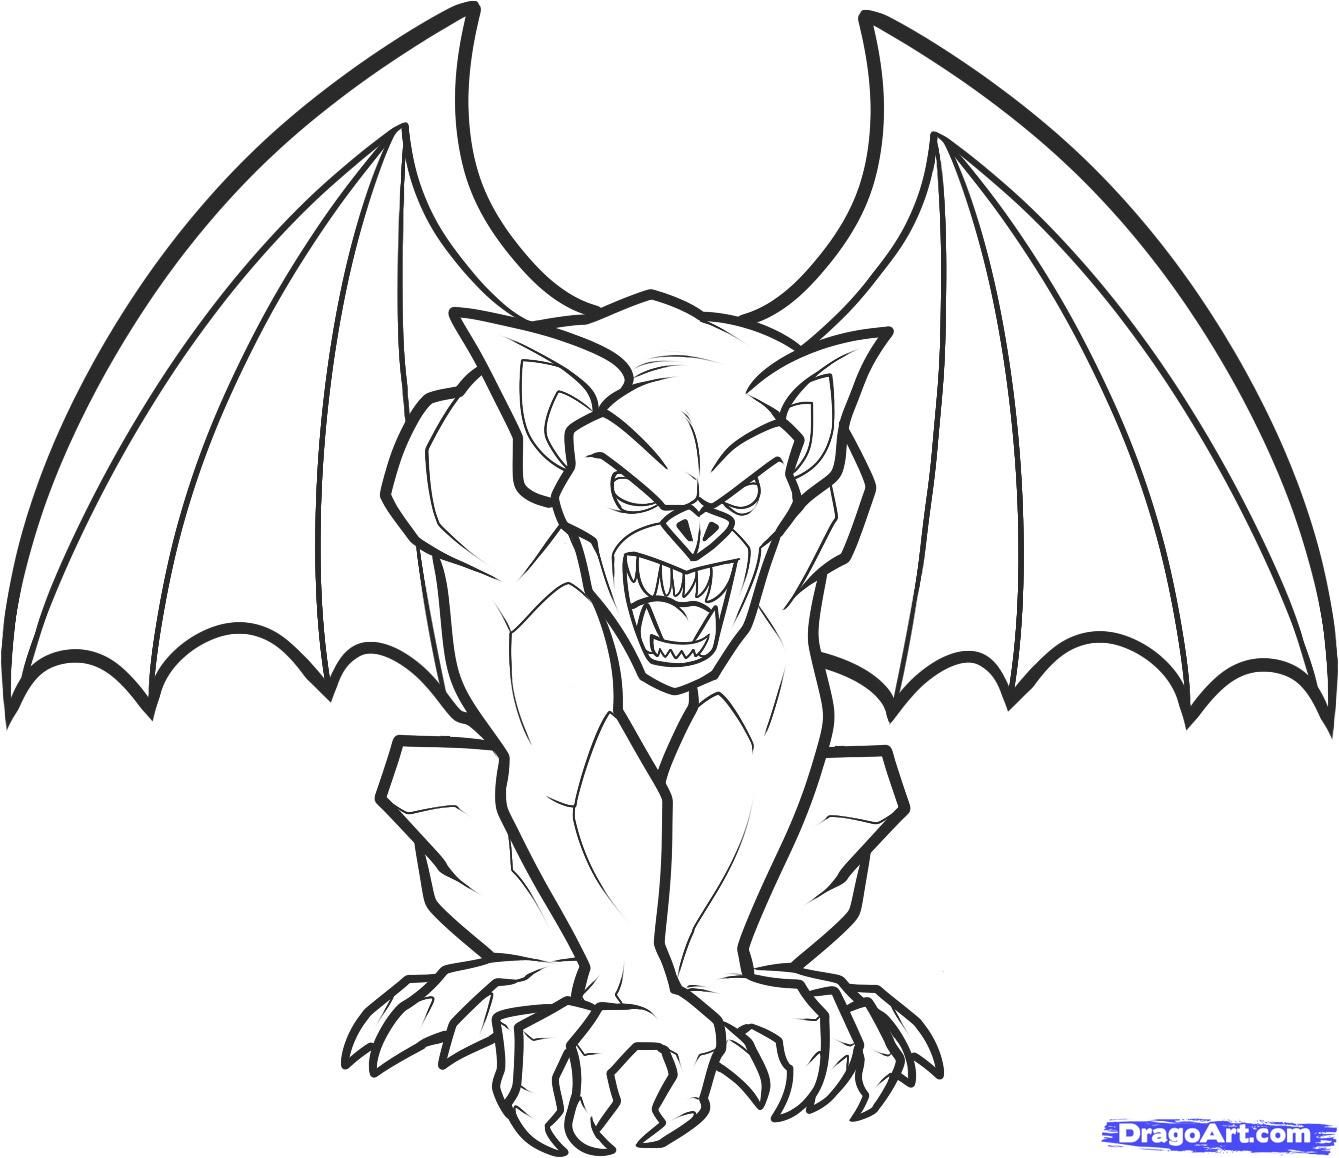 banner library How to draw a. Gargoyles drawing